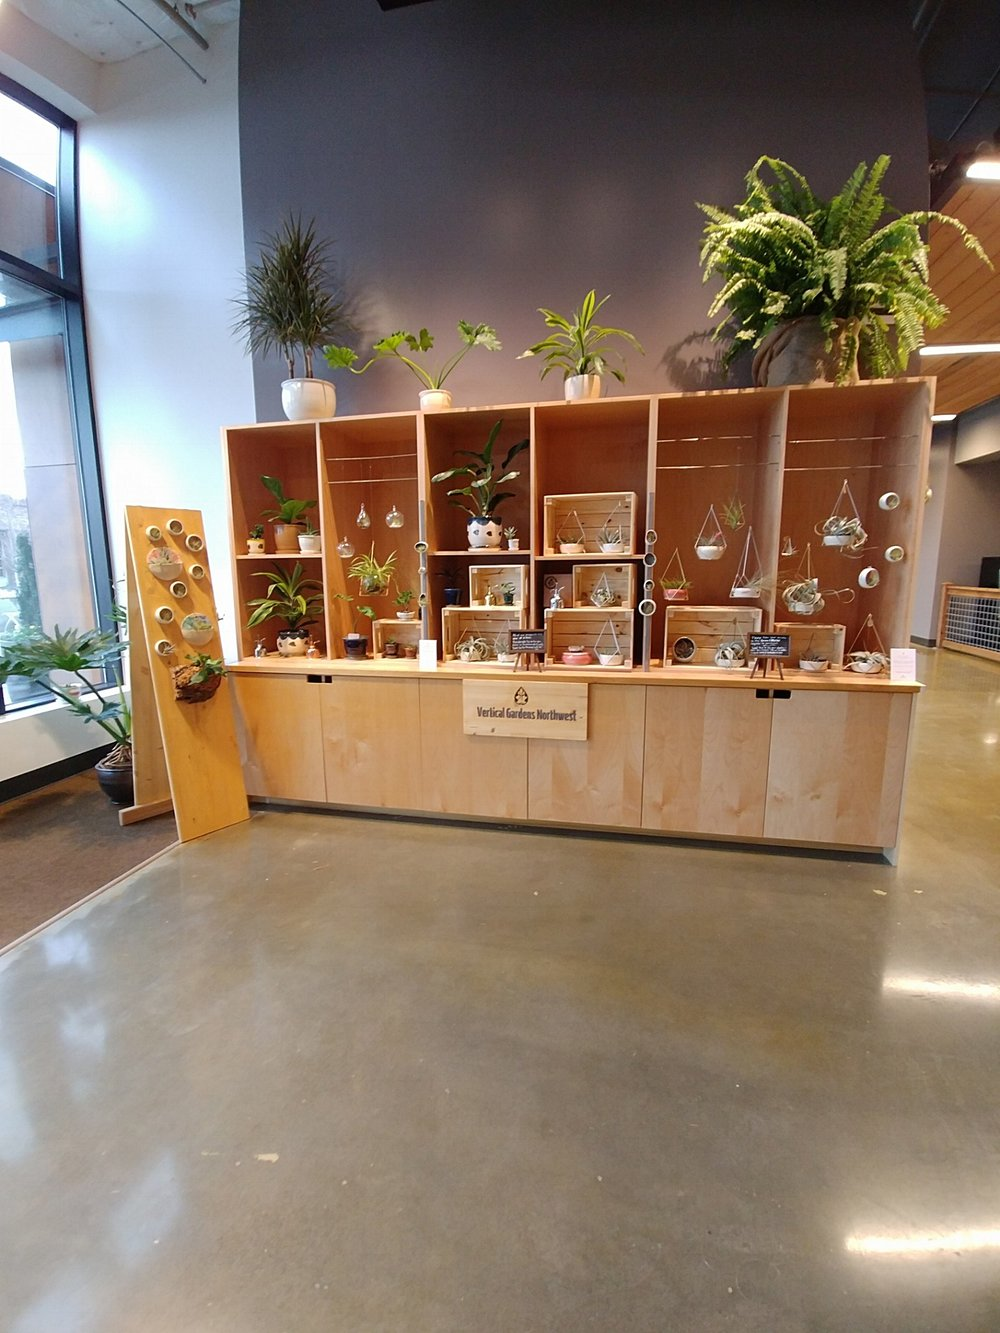 Storefront at 2900 Grand Ave., Everett WA 98201, plants, planters, airplants, indoor